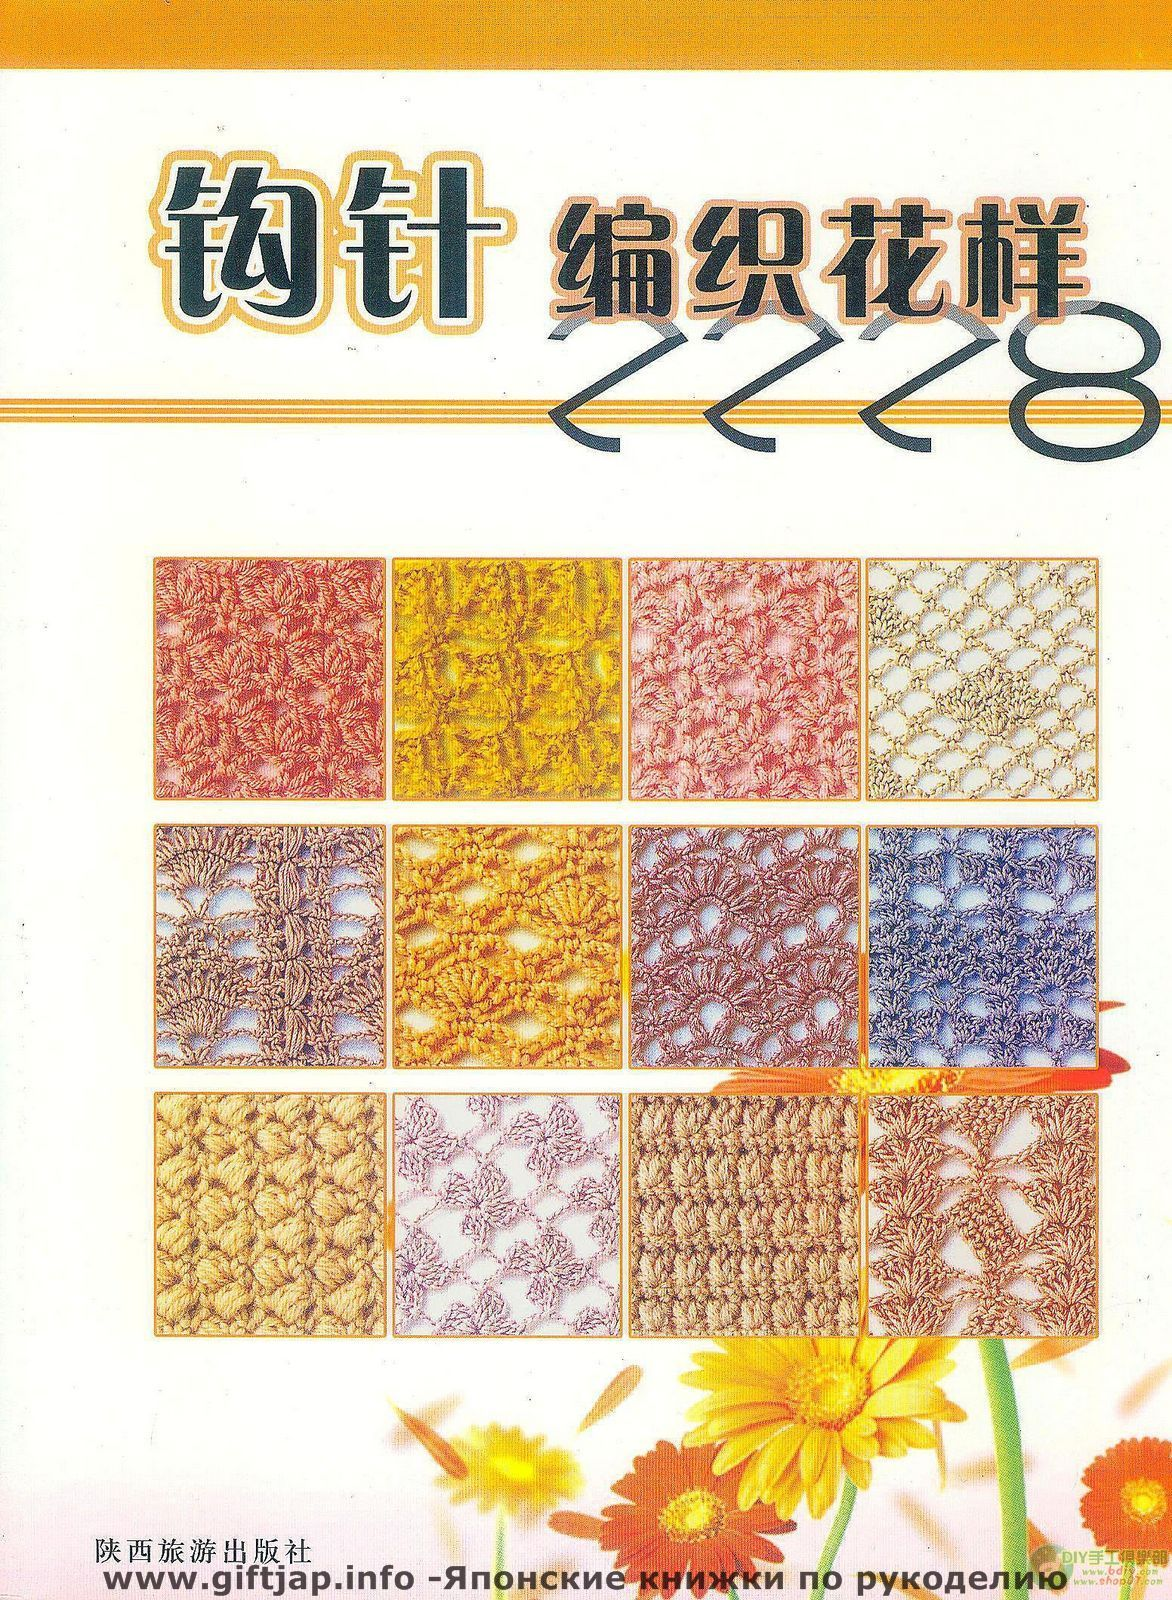 over 200 hundred pages of crochet ideas and patterns